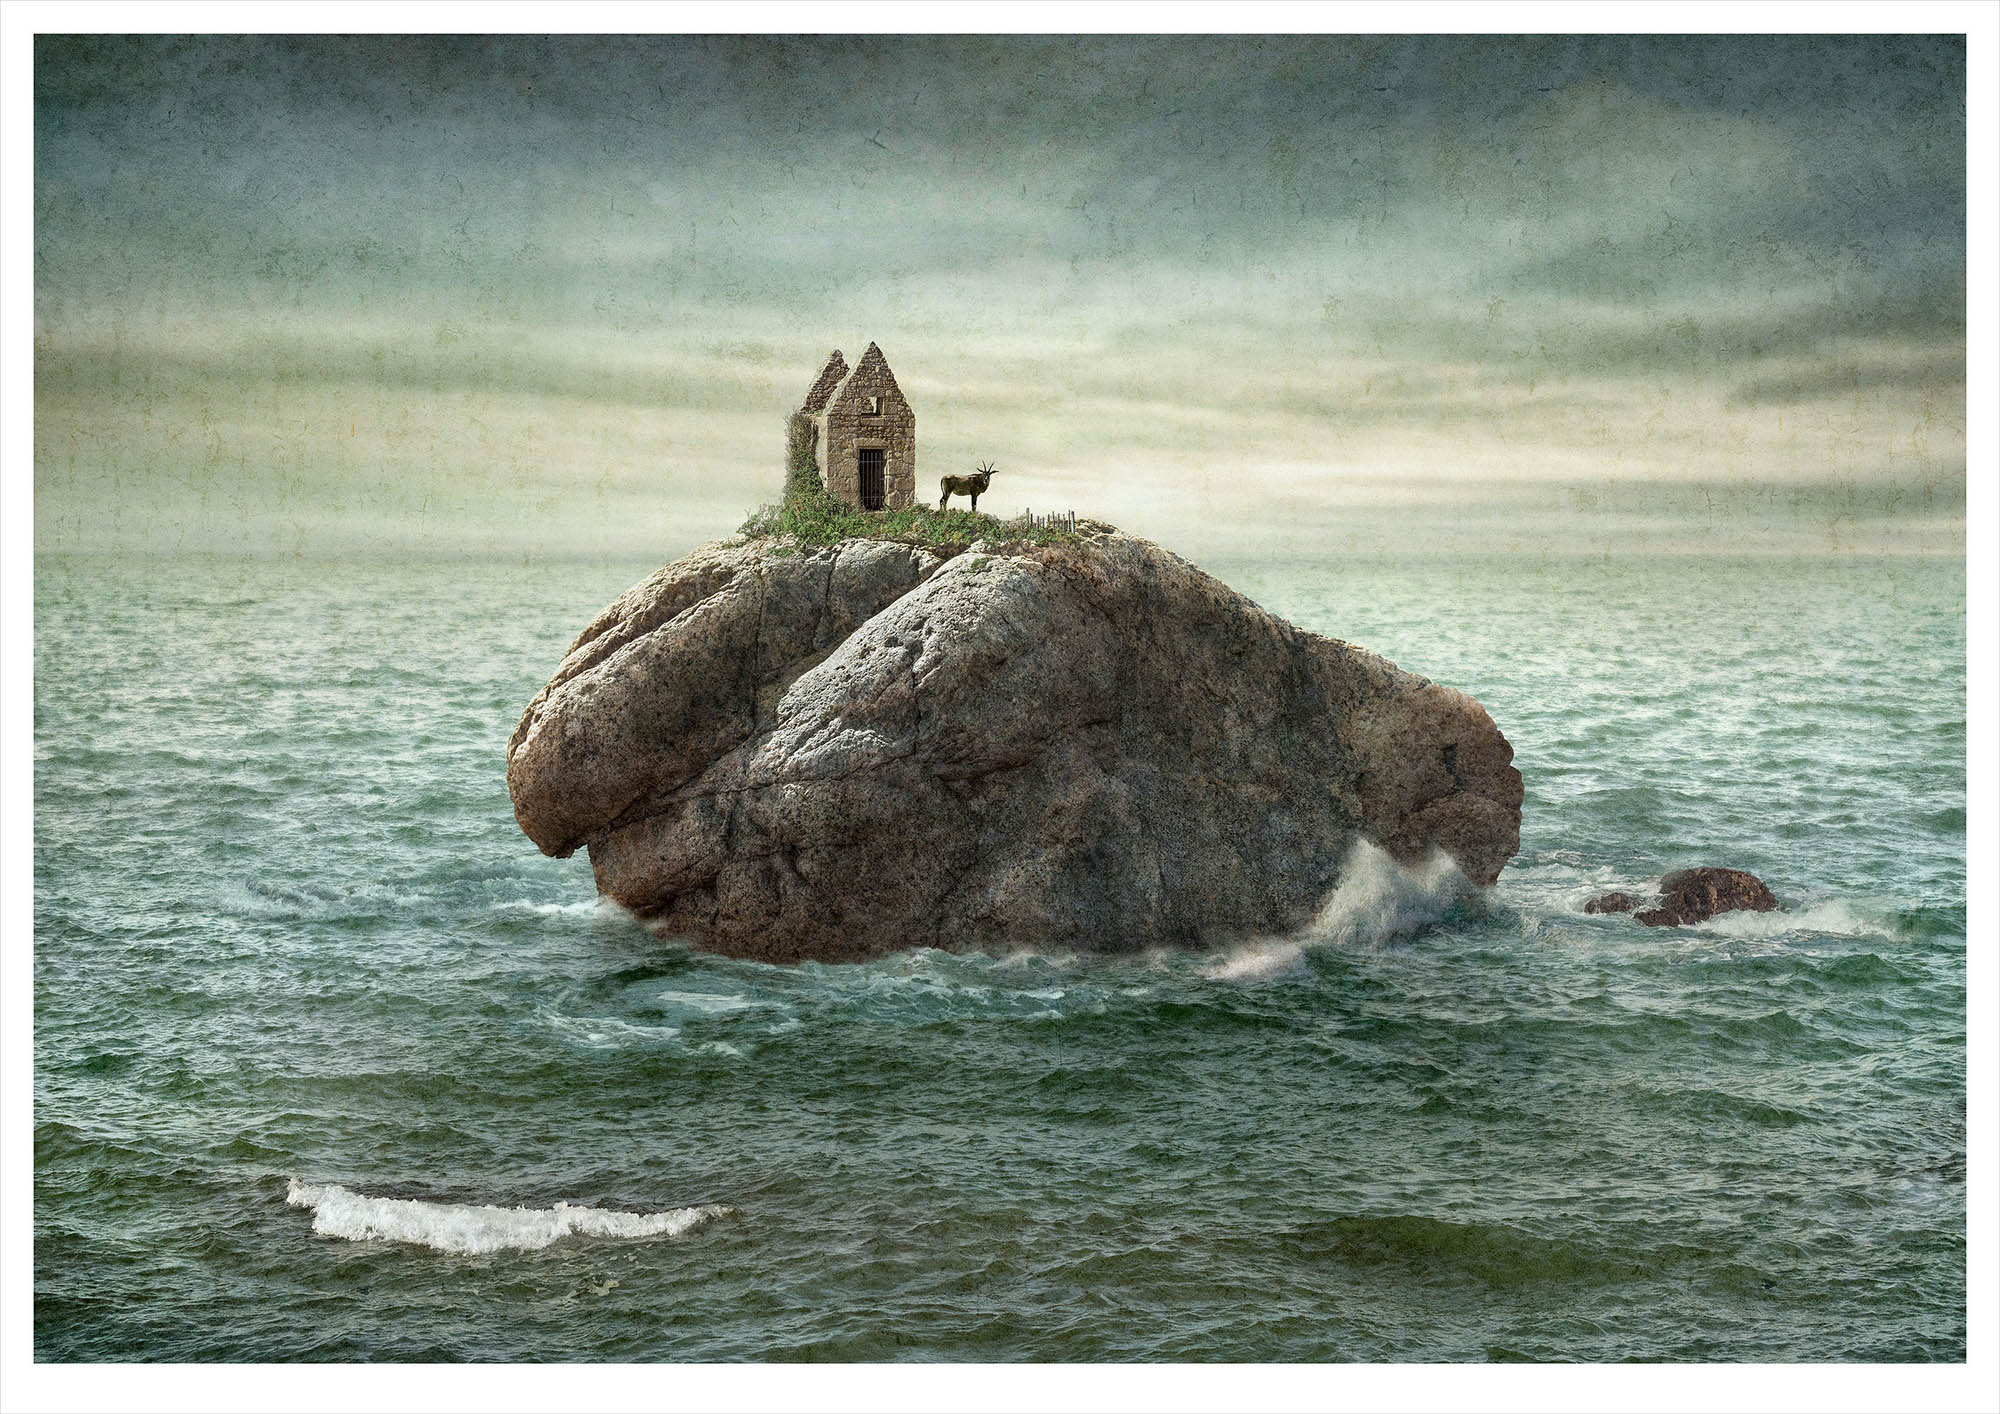 Solitary small island in ocean with ramshackle stone building and horned antelope looking to camera